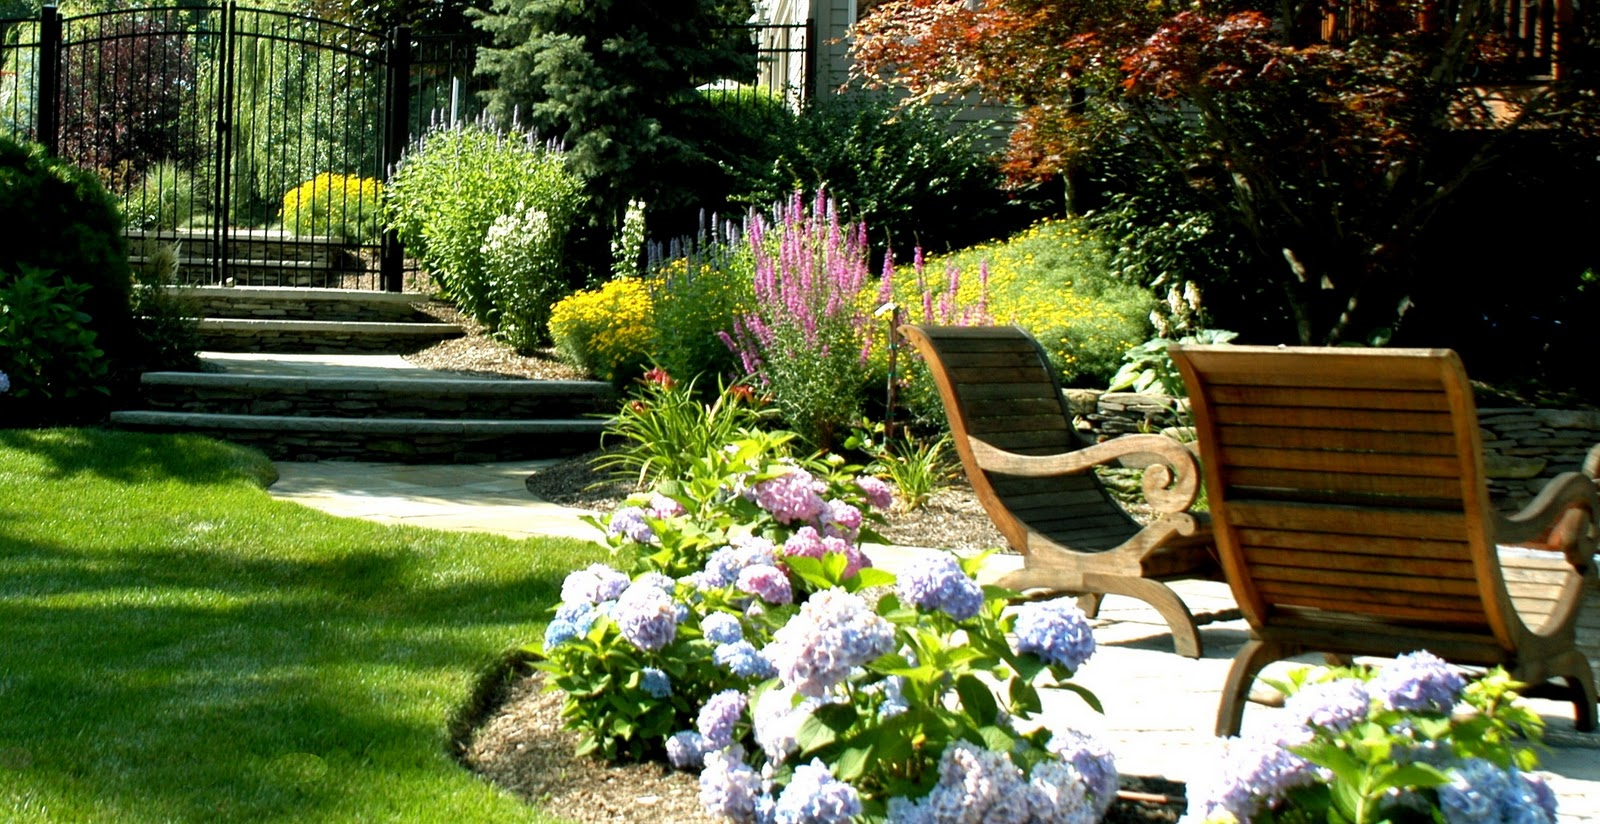 Hightechlandscapes new jersey landscape design for In the garden landscape and design